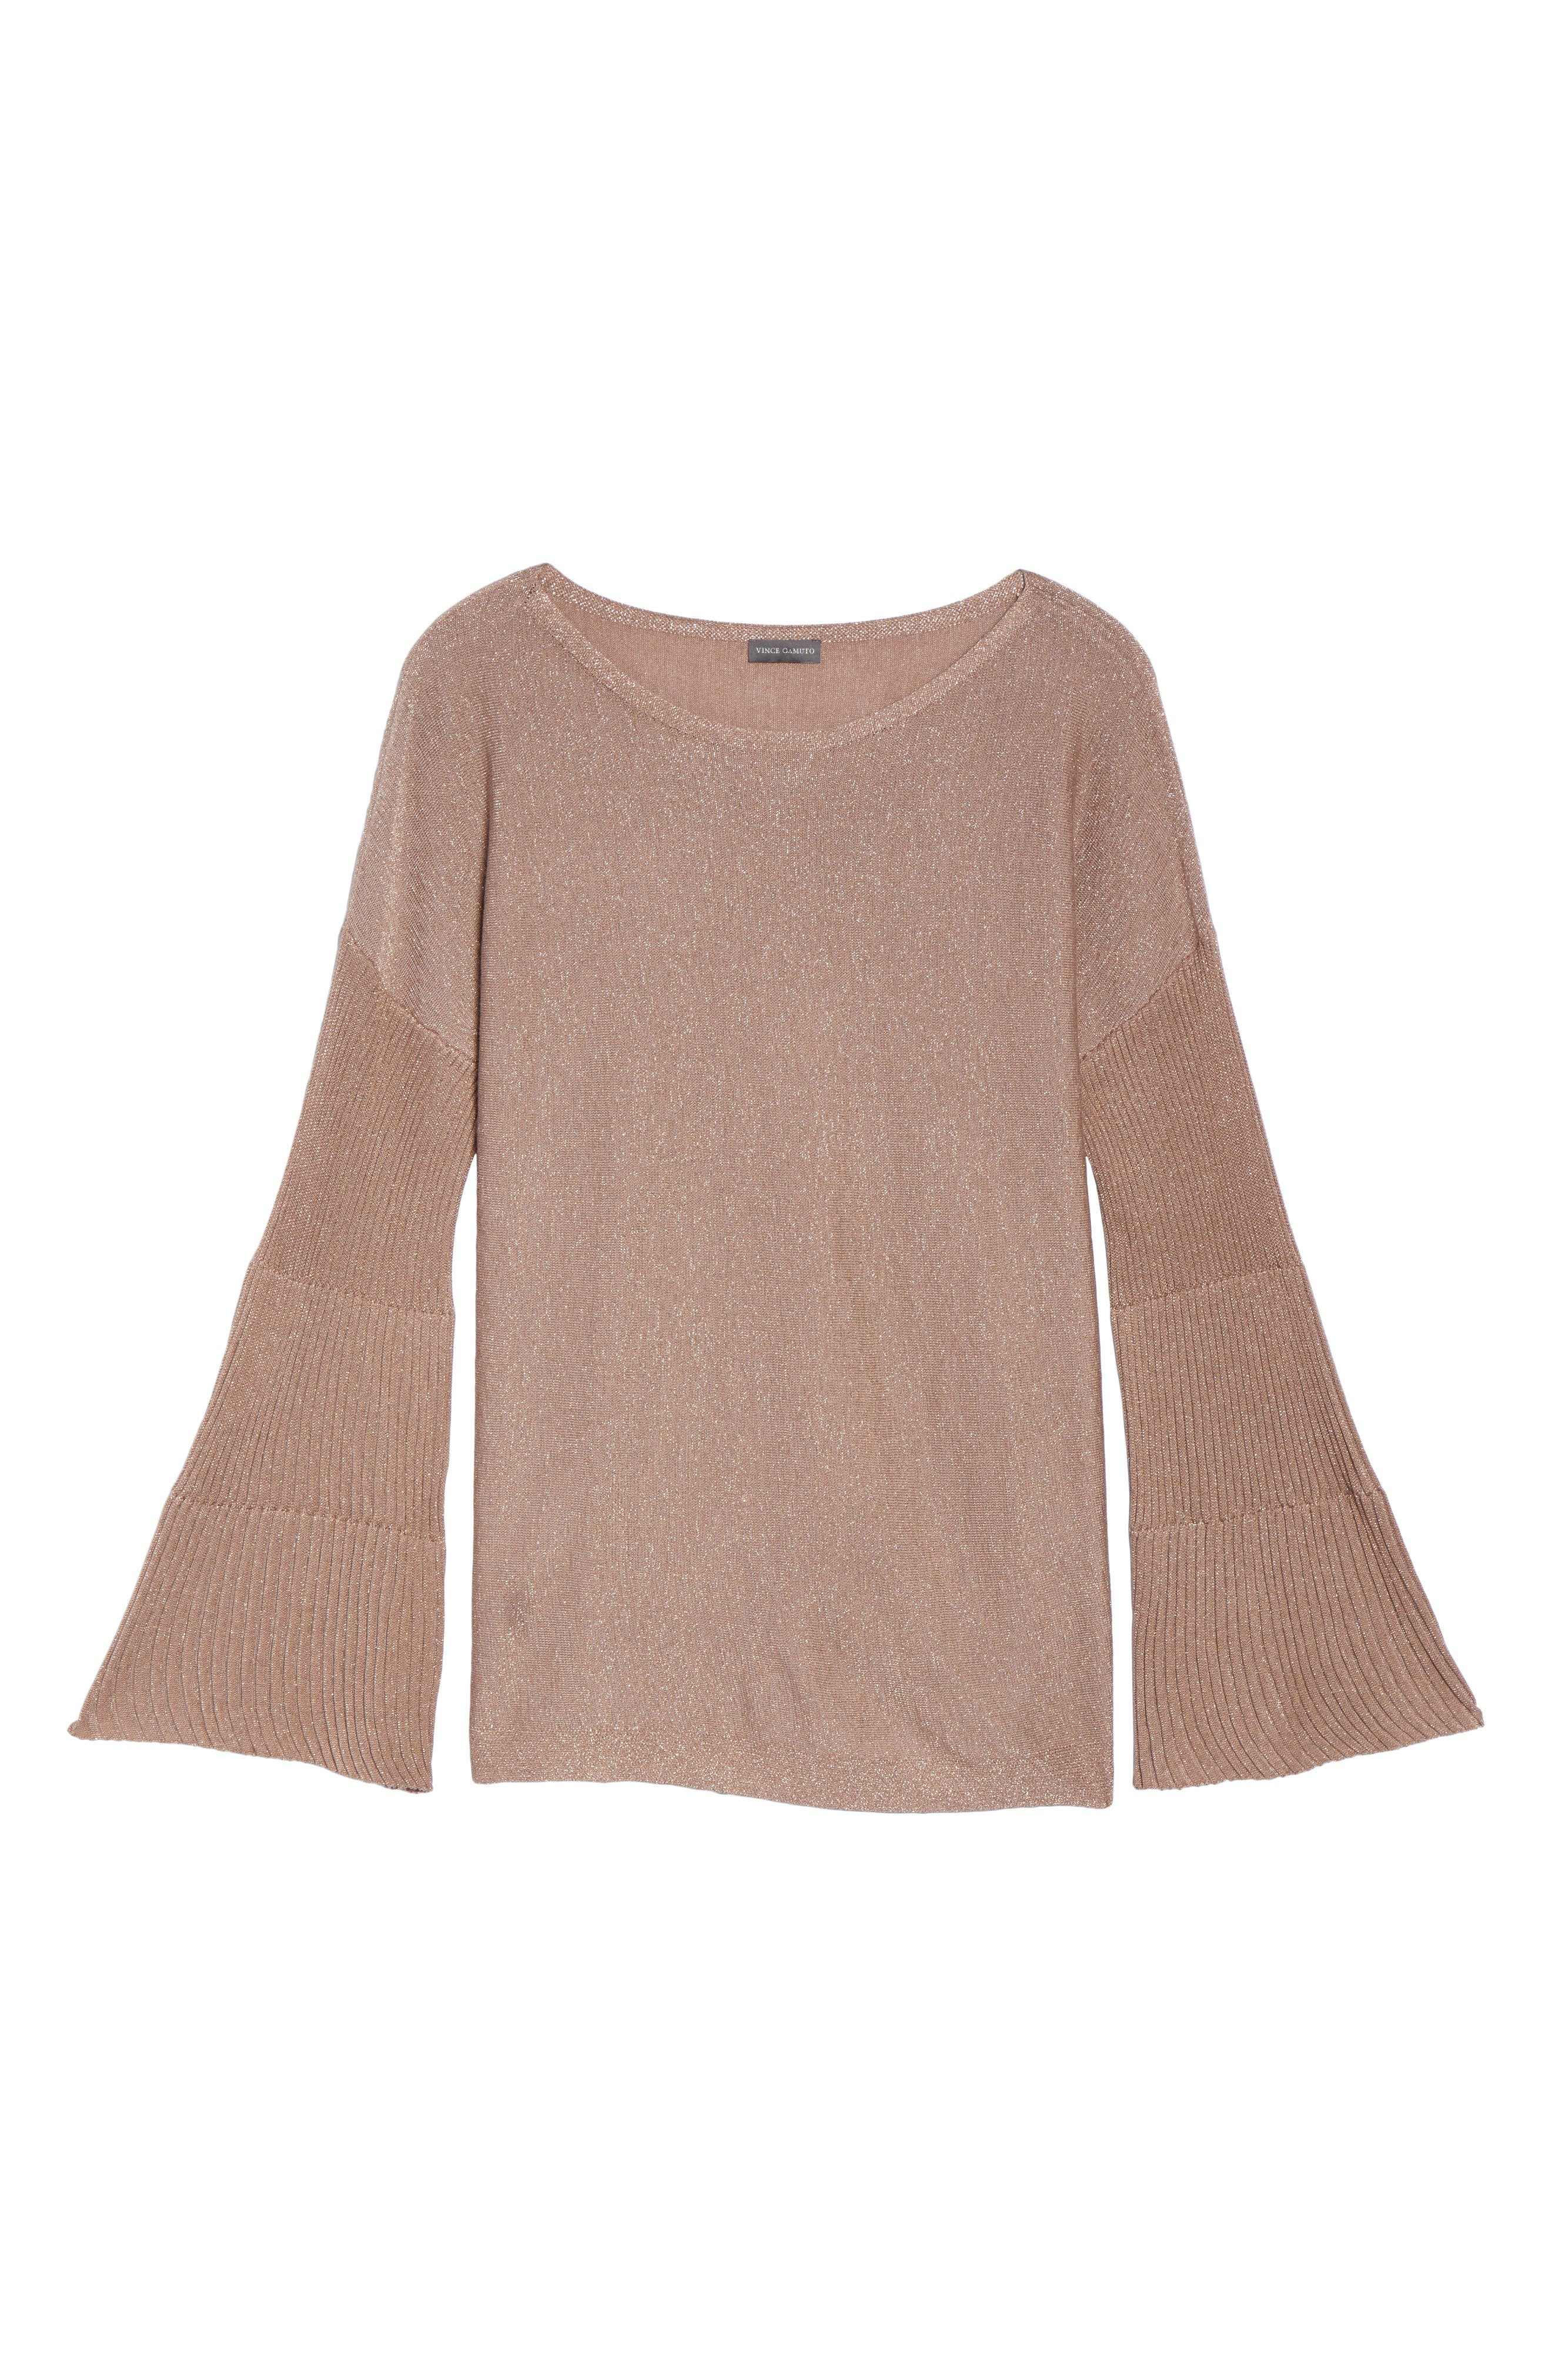 Sparkly Bell Sleeve Sweater,                             Alternate thumbnail 6, color,                             Rose Taupe